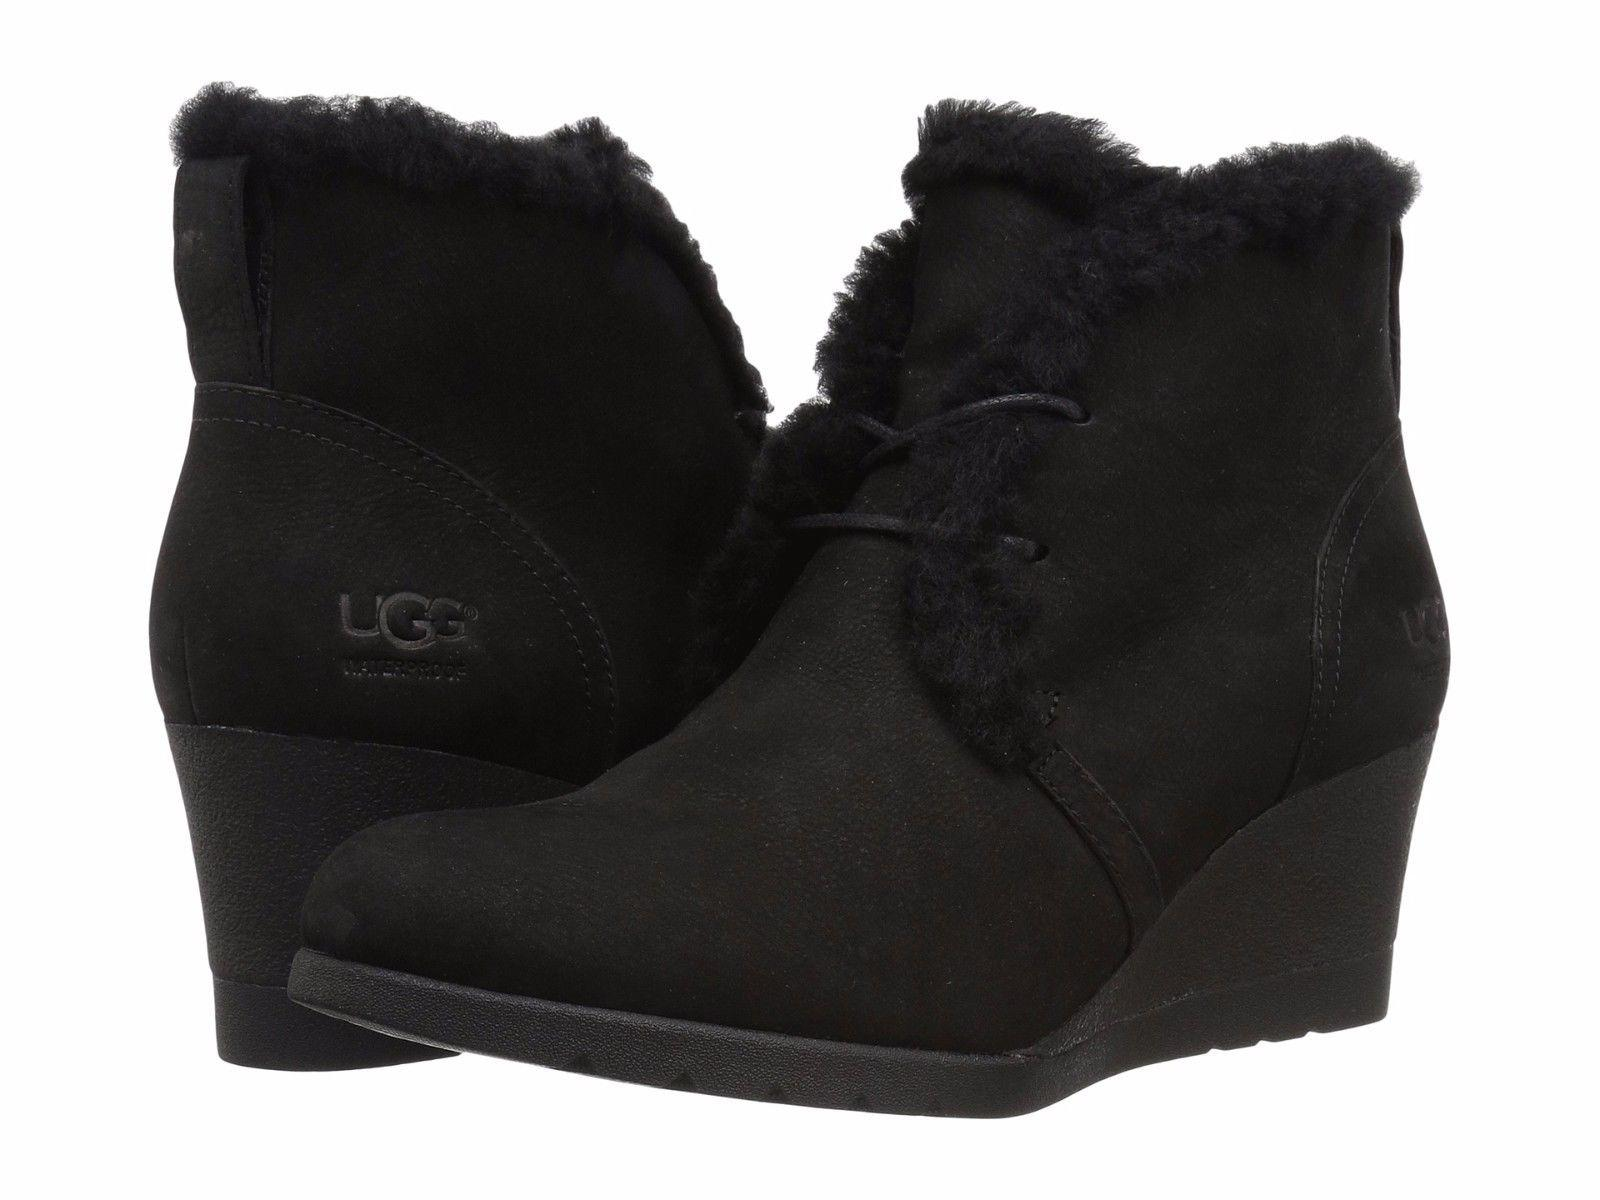 UGG Australia For Her 1017421 Size 7 Black Boots ...